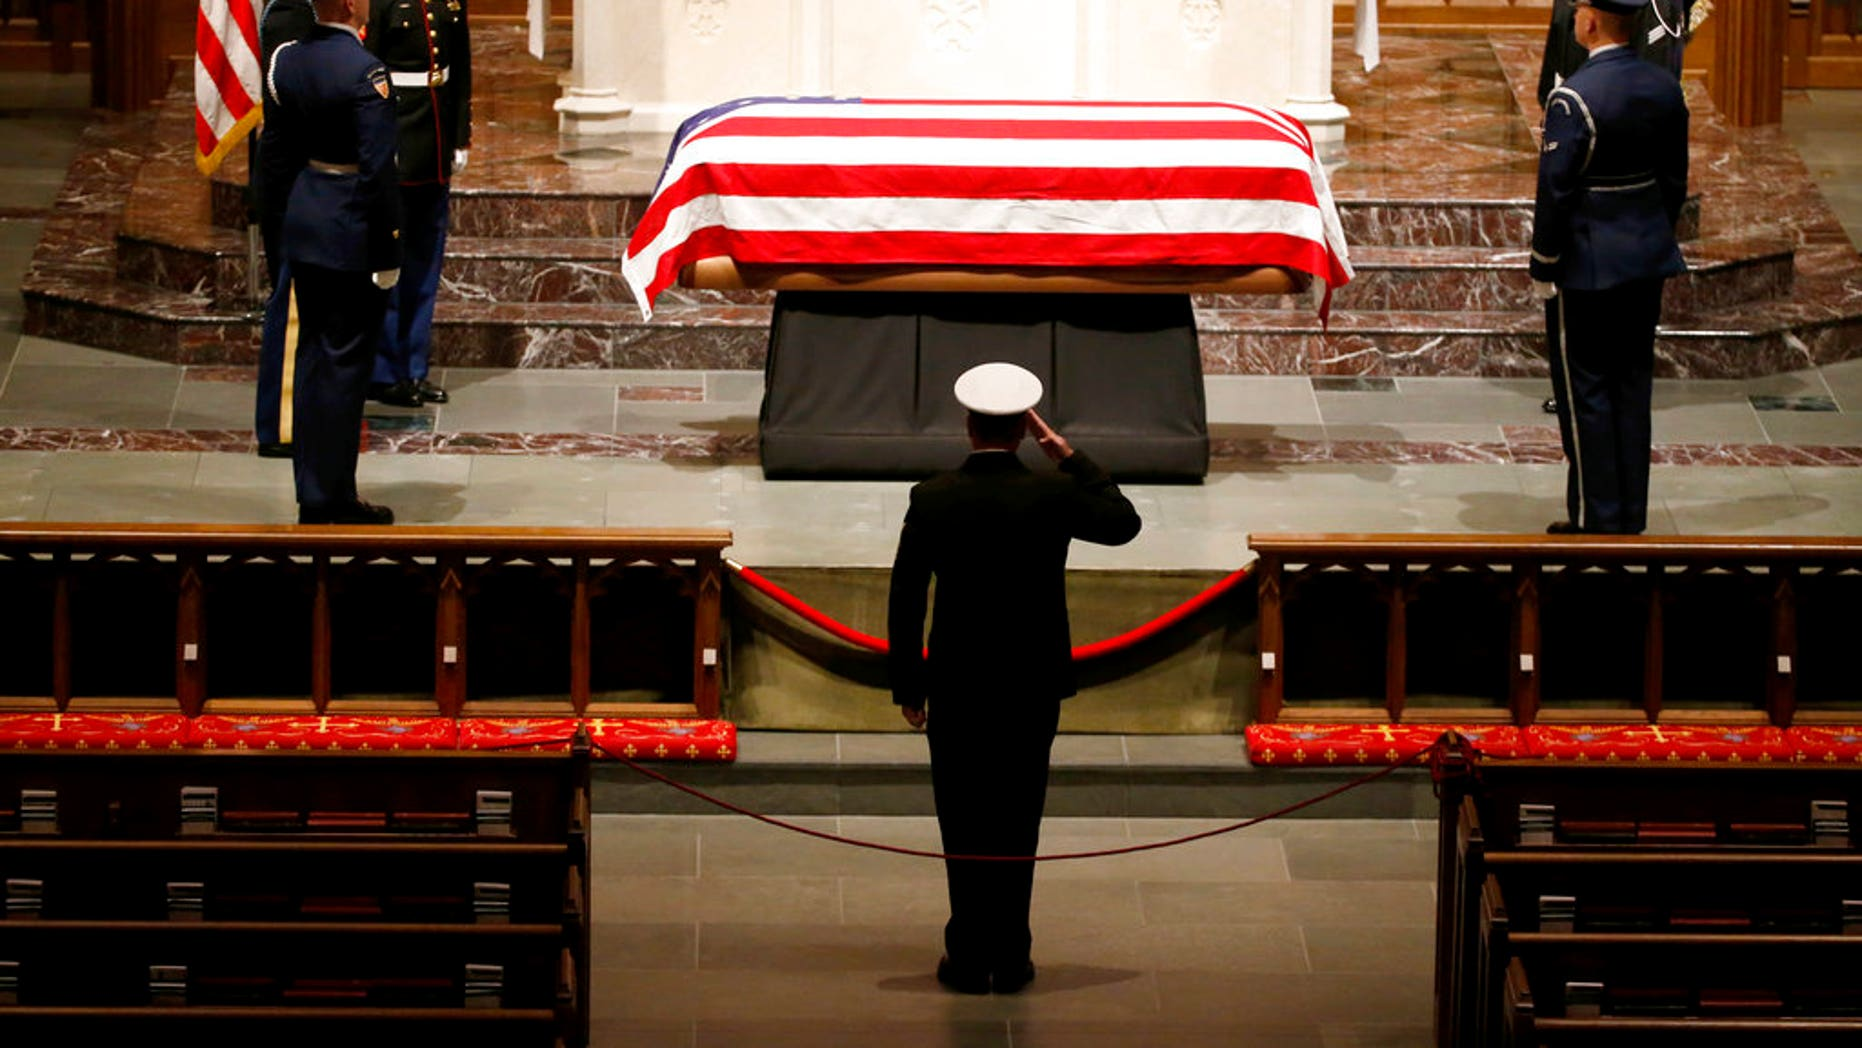 A member of the military pays his respects to the flag-draped casket of former President George H.W. Bush at St. Martin's Episcopal Church Wednesday, Dec. 5, 2018, in Houston. (AP Photo/Mark Humphrey)